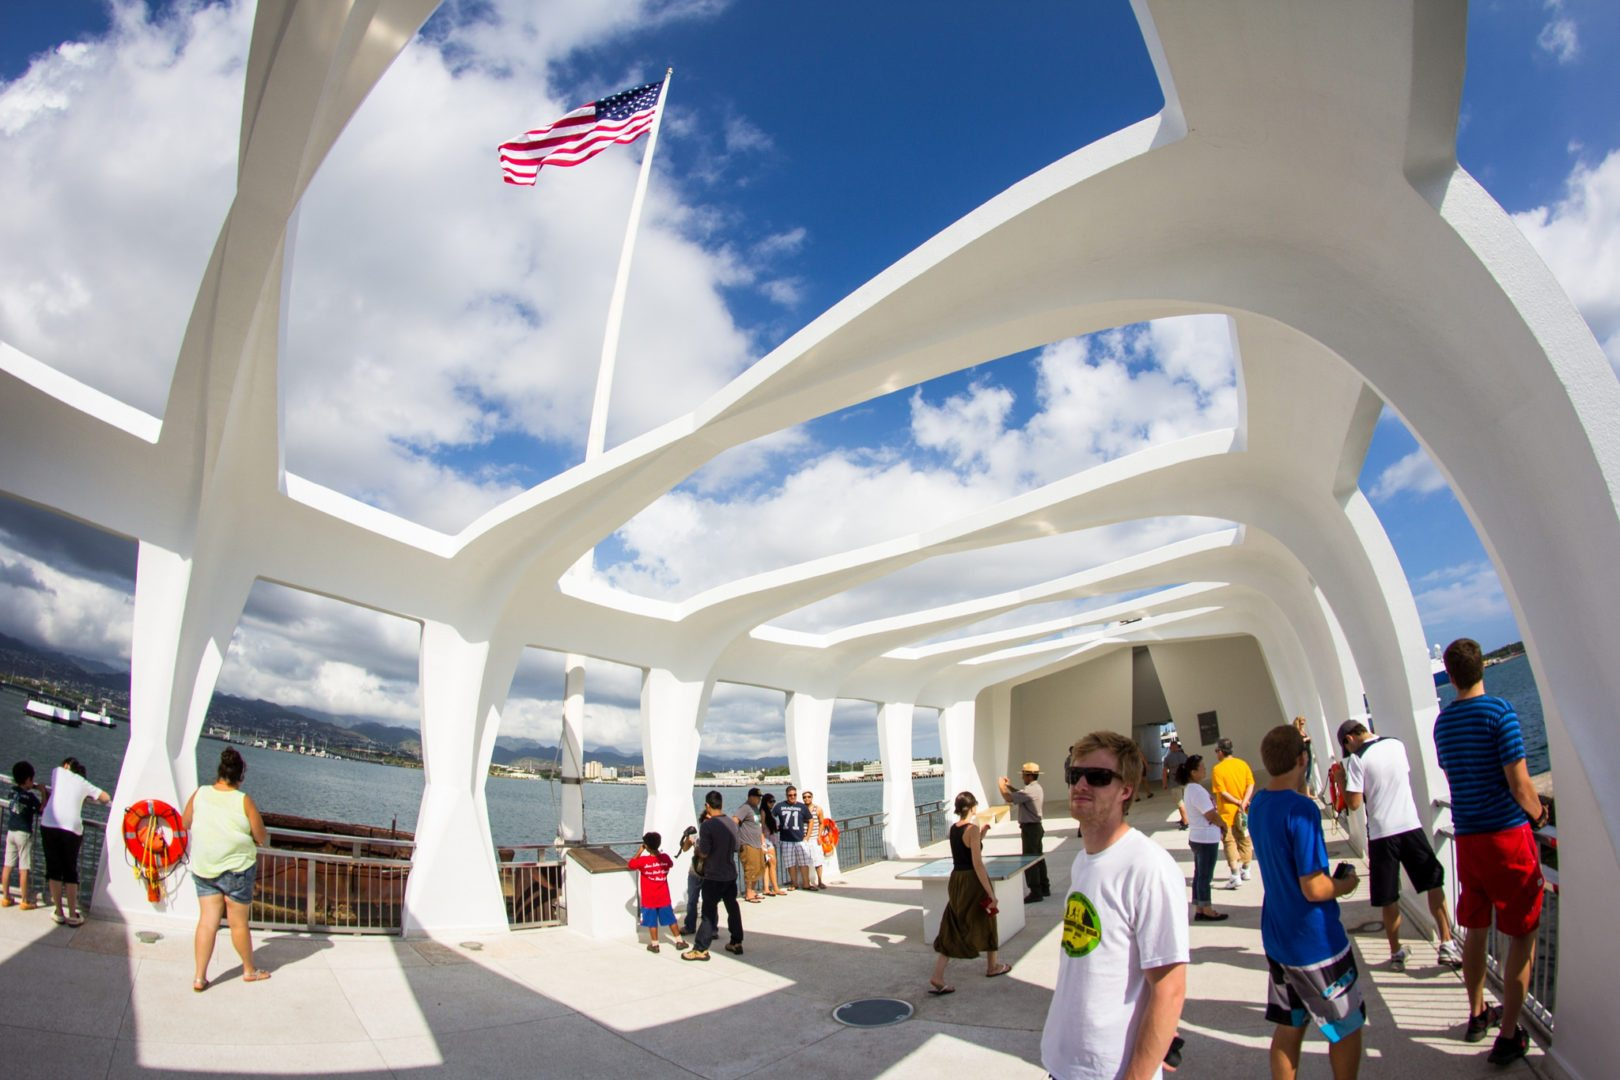 Pearl Harbor memorial, Hawaii